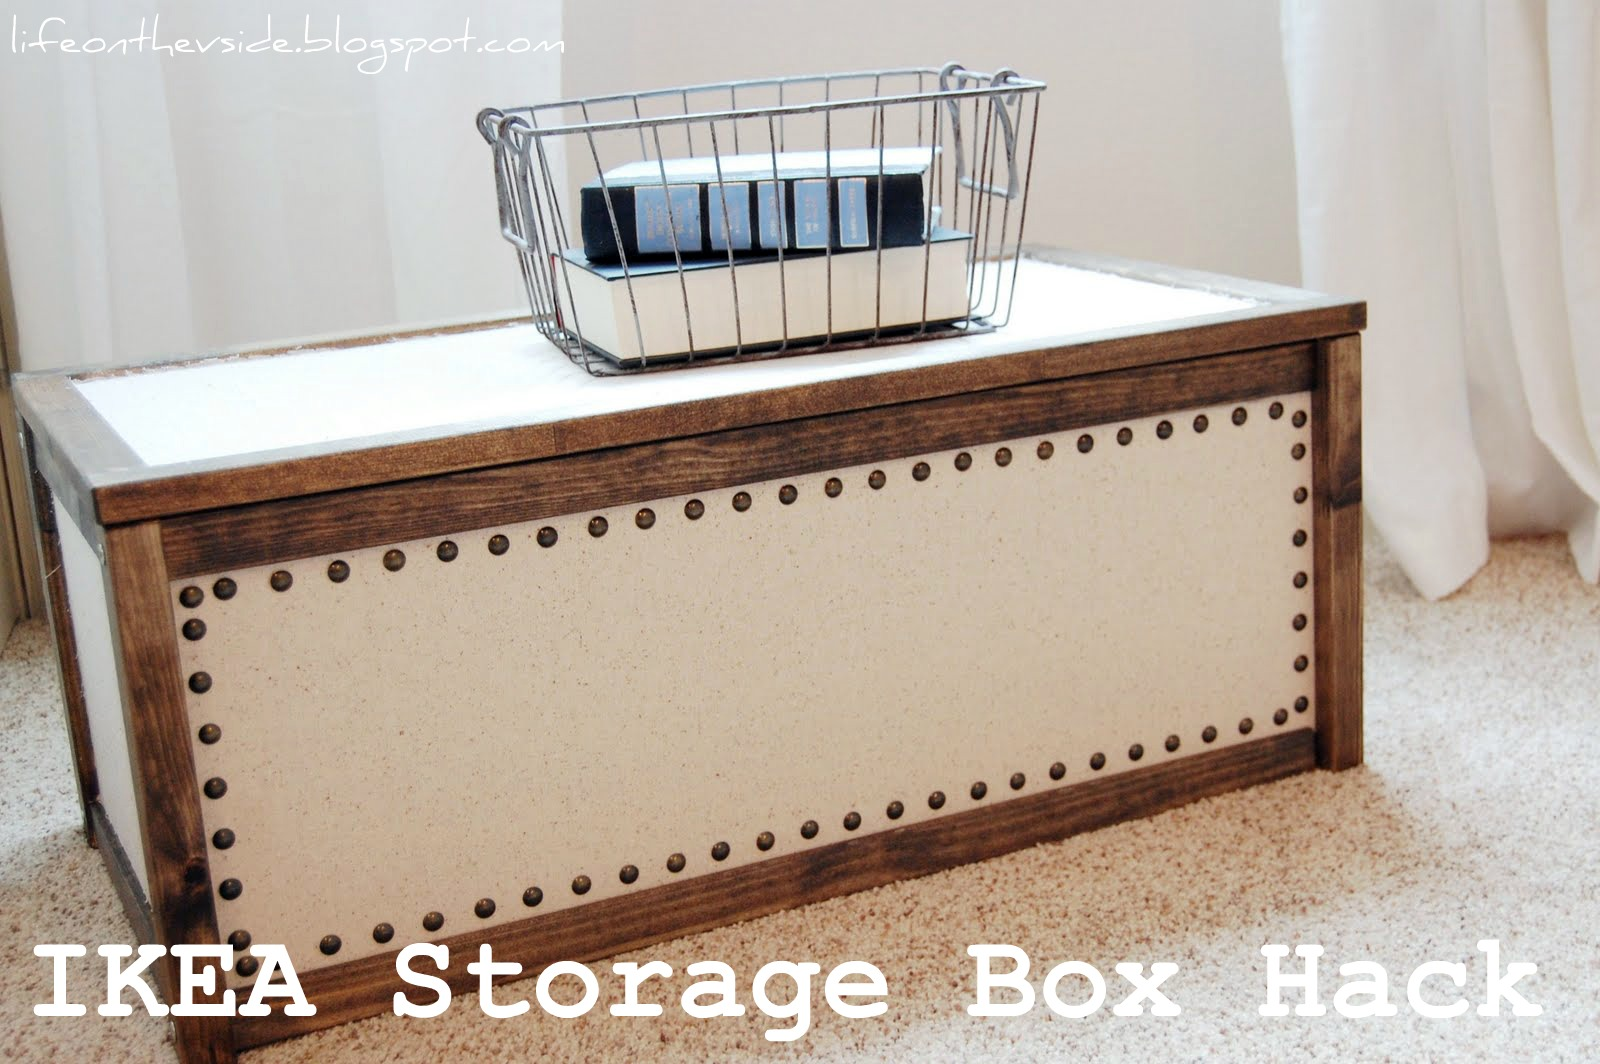 Storage Chest Ikea Storage Chest Ikea Storage Chest